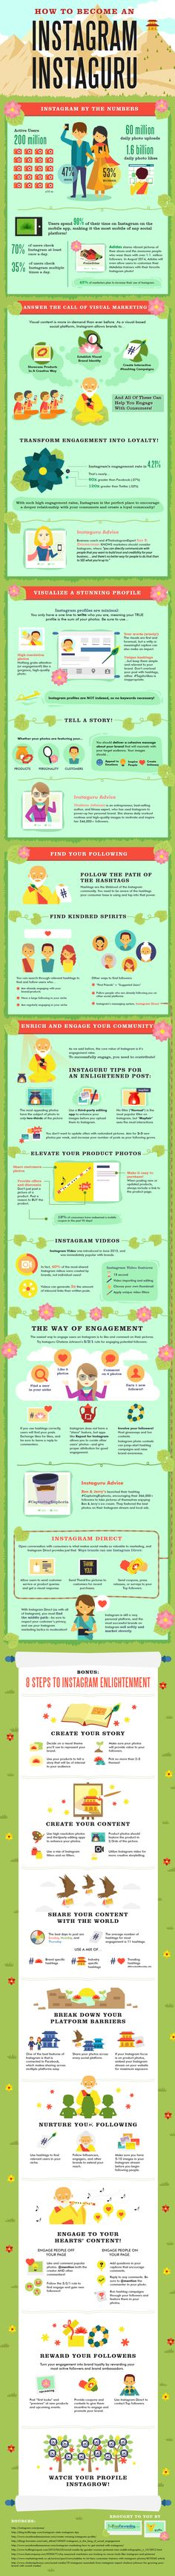 #Instagram #Facts on how to tell #YourStory and get #Shares #SocialMedia #Infographic #StoneSquared #STONE²